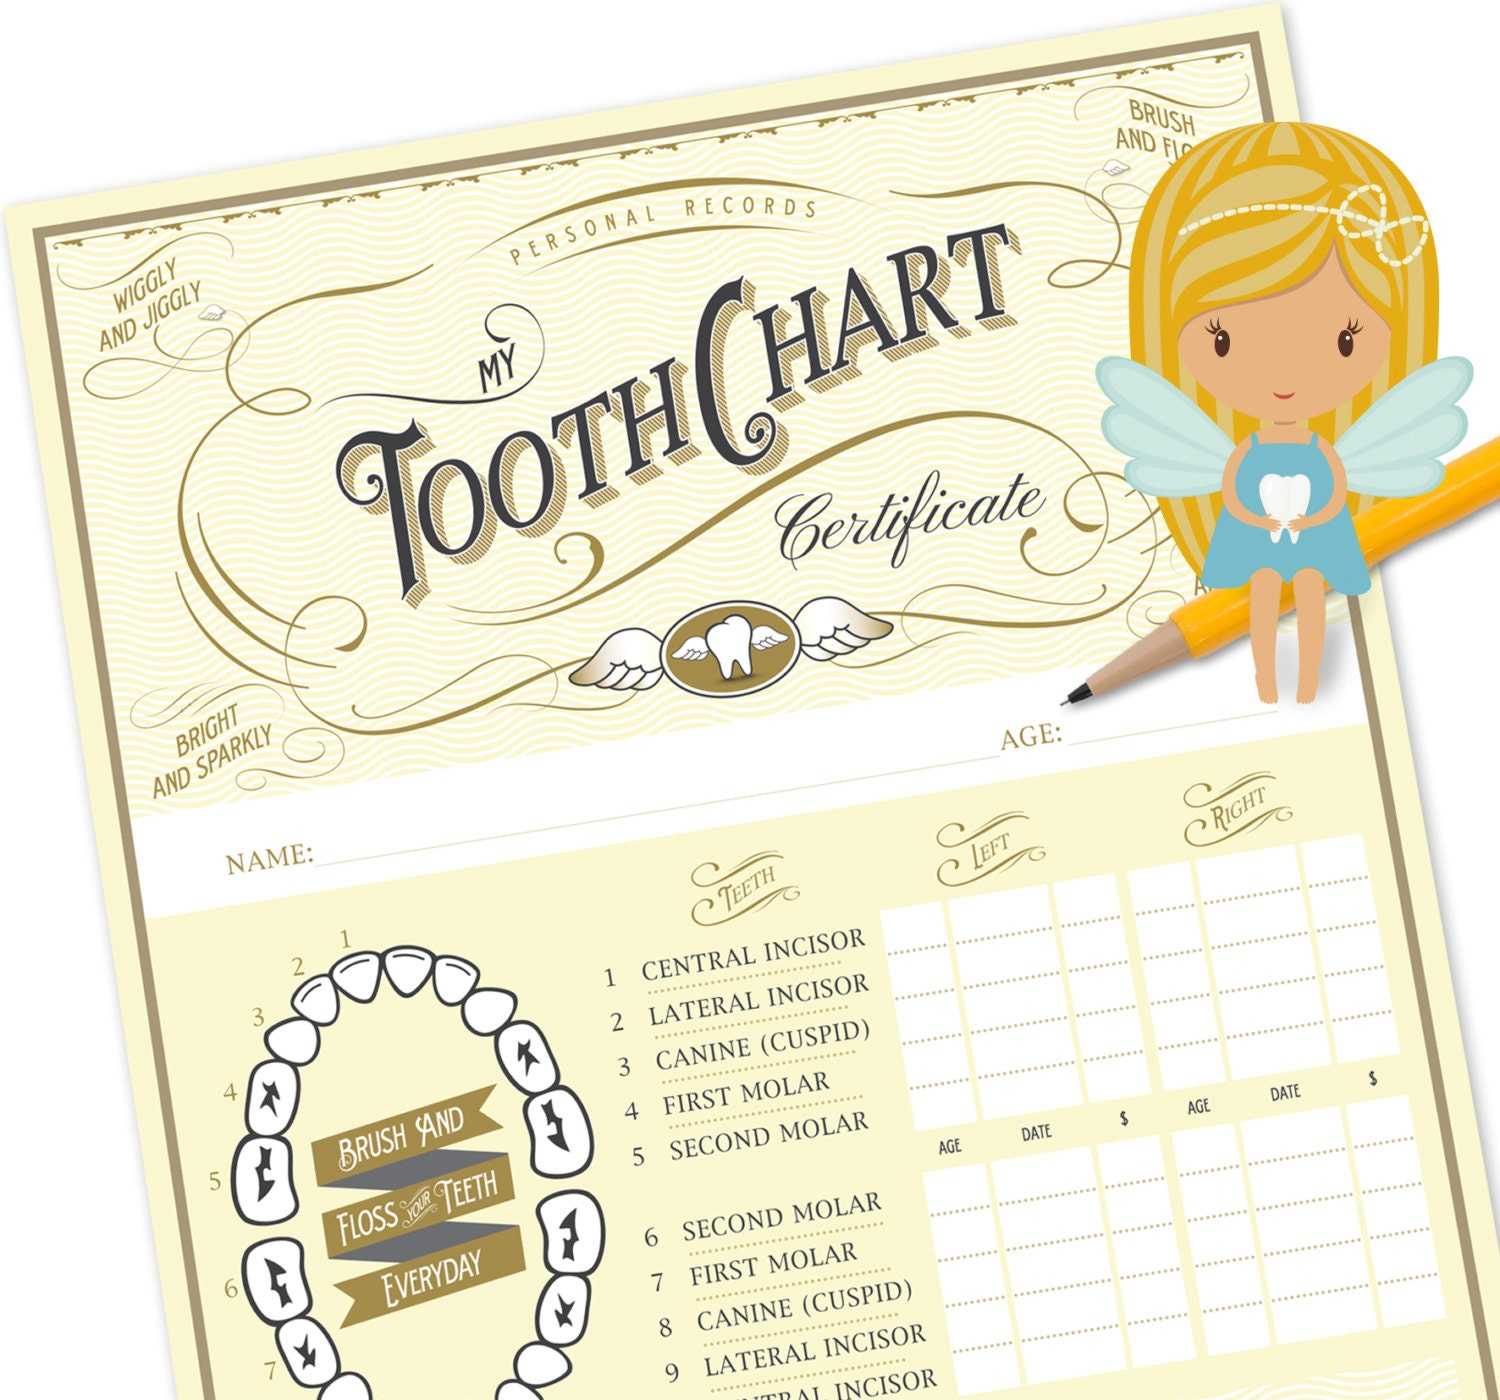 Tooth fairy chart tooth fairy certificate tooth fairy zoom xflitez Choice Image